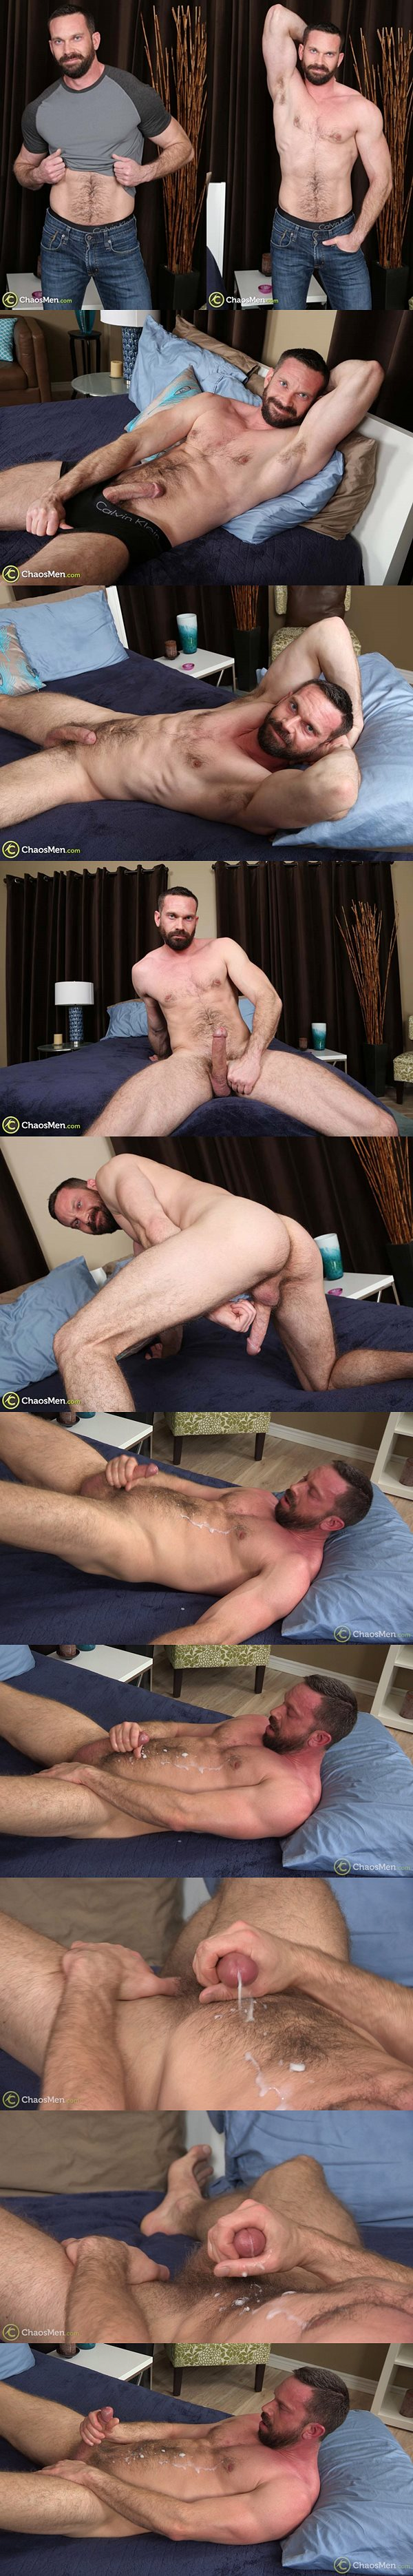 Hot bearded hairy hunk Cliff shoots his big loads at Chaosmen